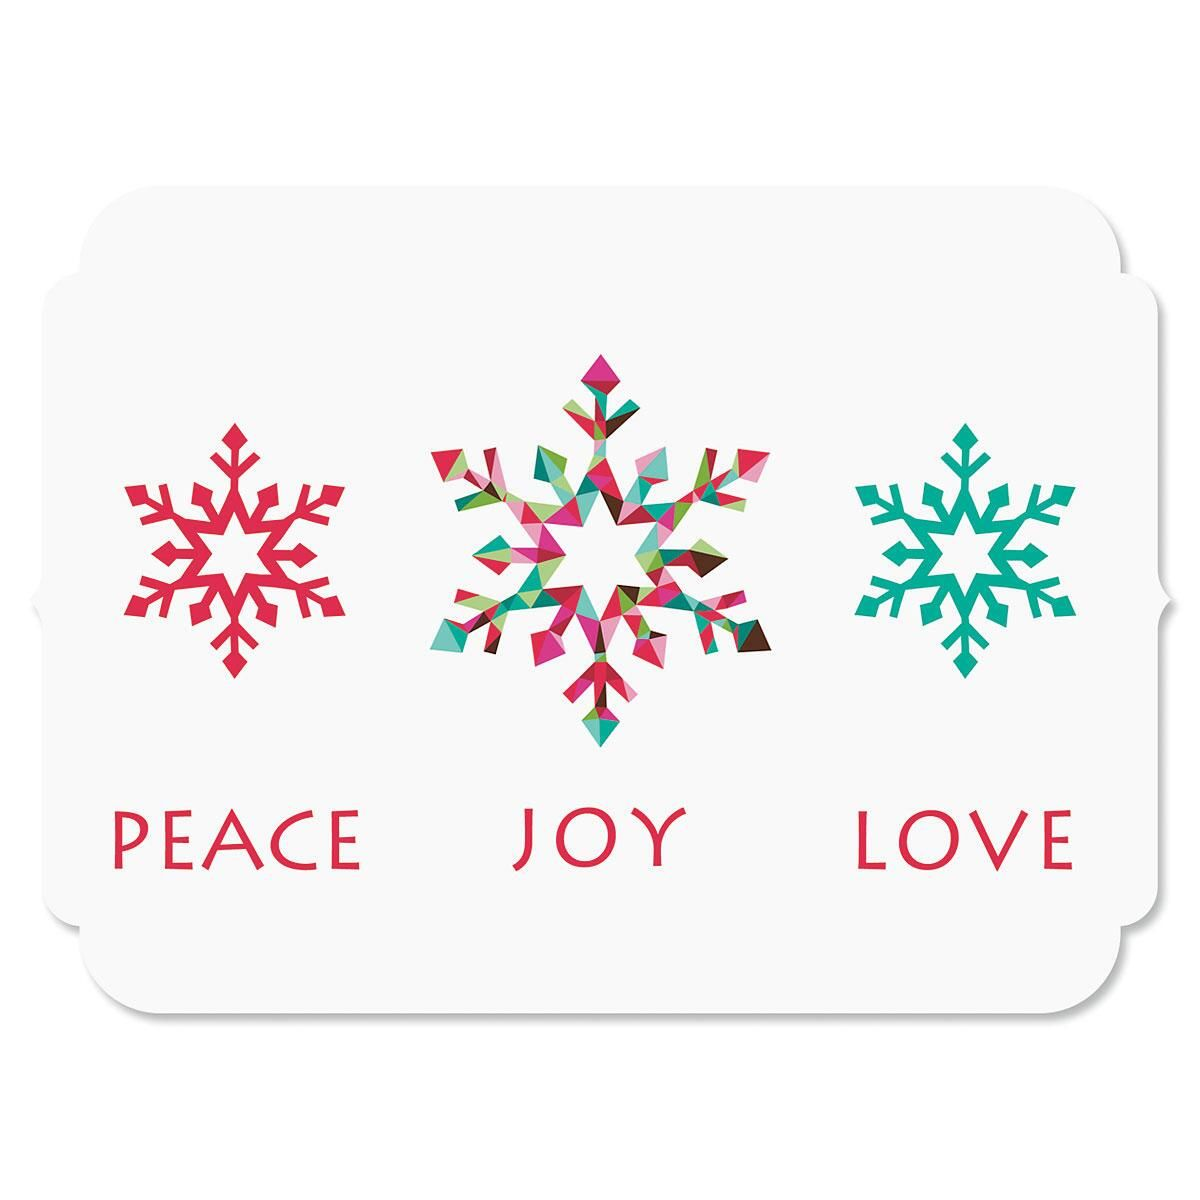 Snowflake Season Nonpersonalized Christmas Cards - Set of 72